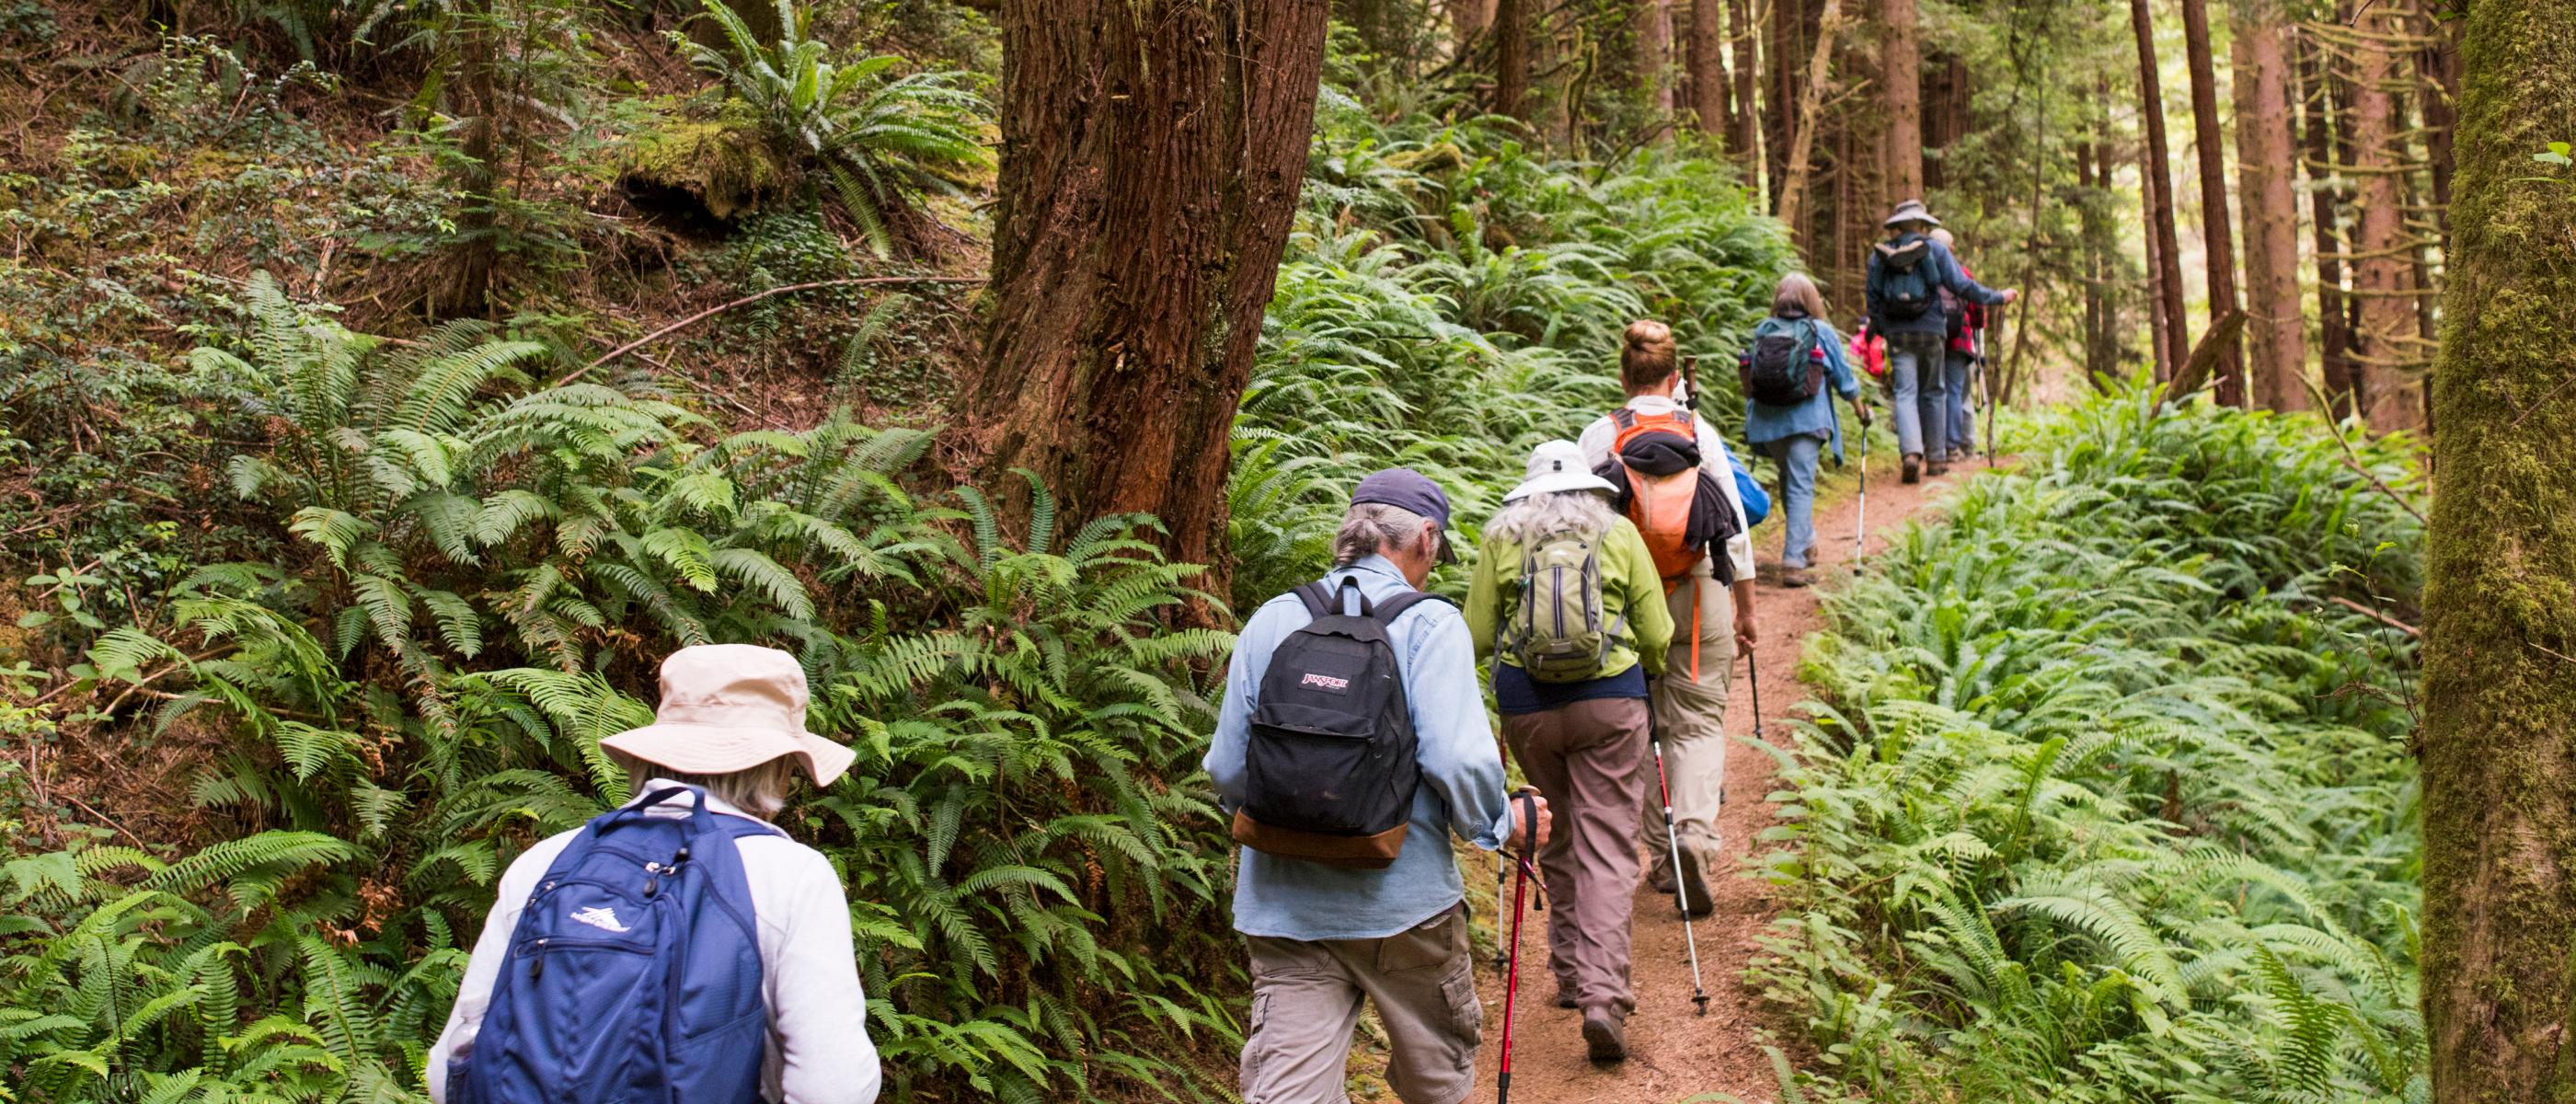 People hiking on forest trail